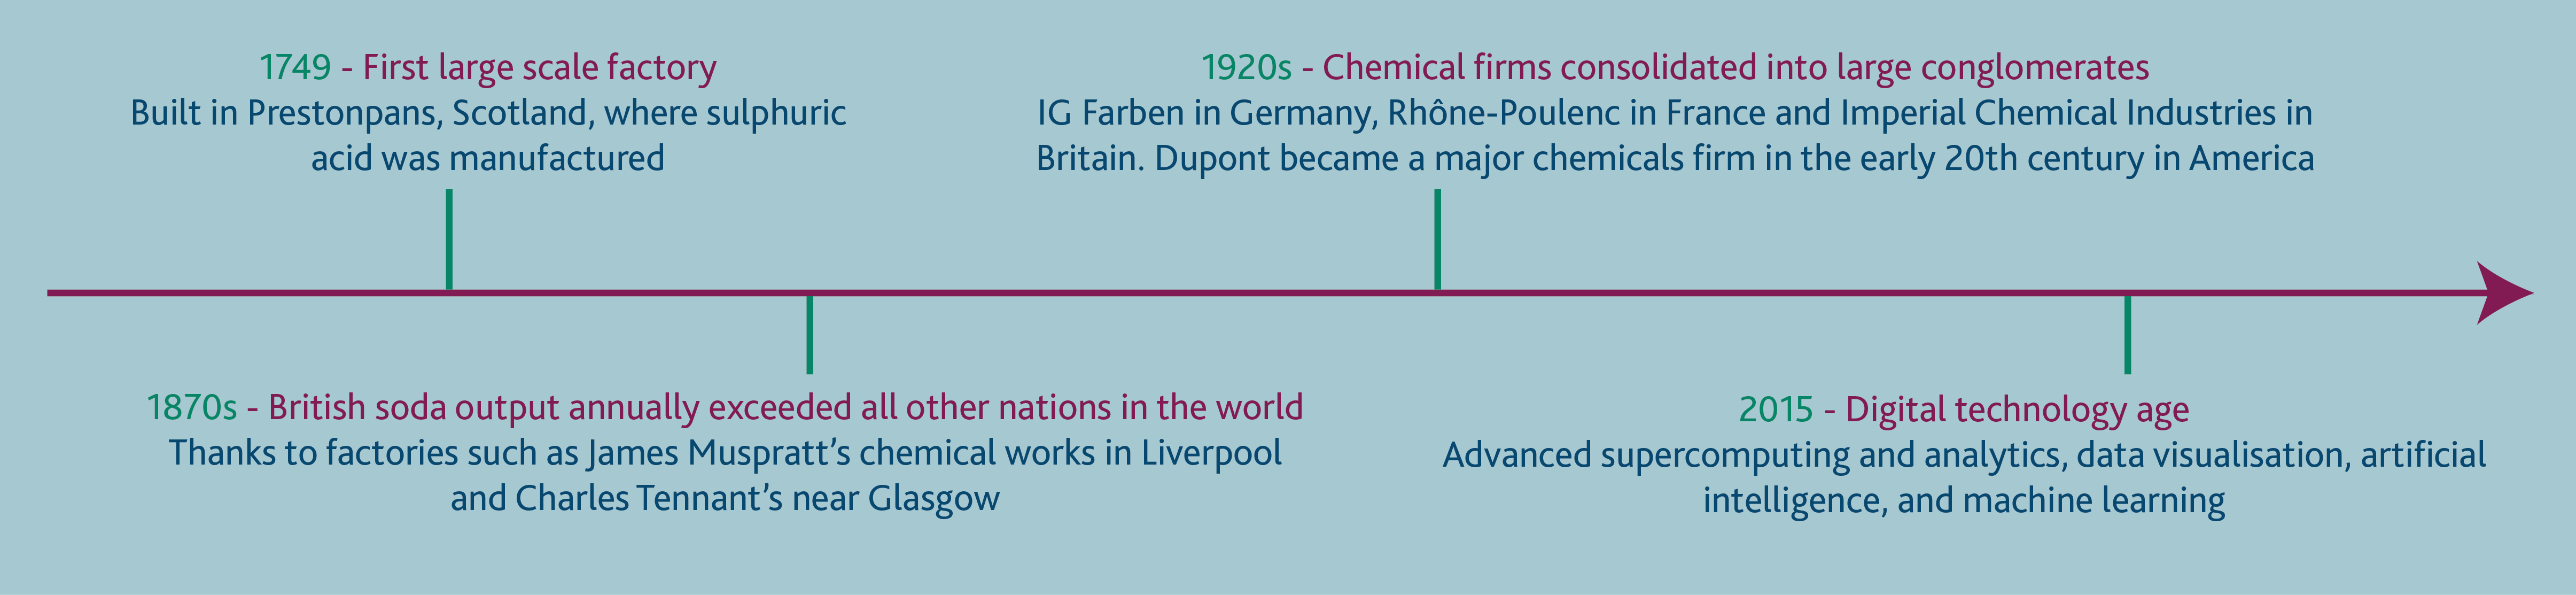 timeline-chemical-industry1